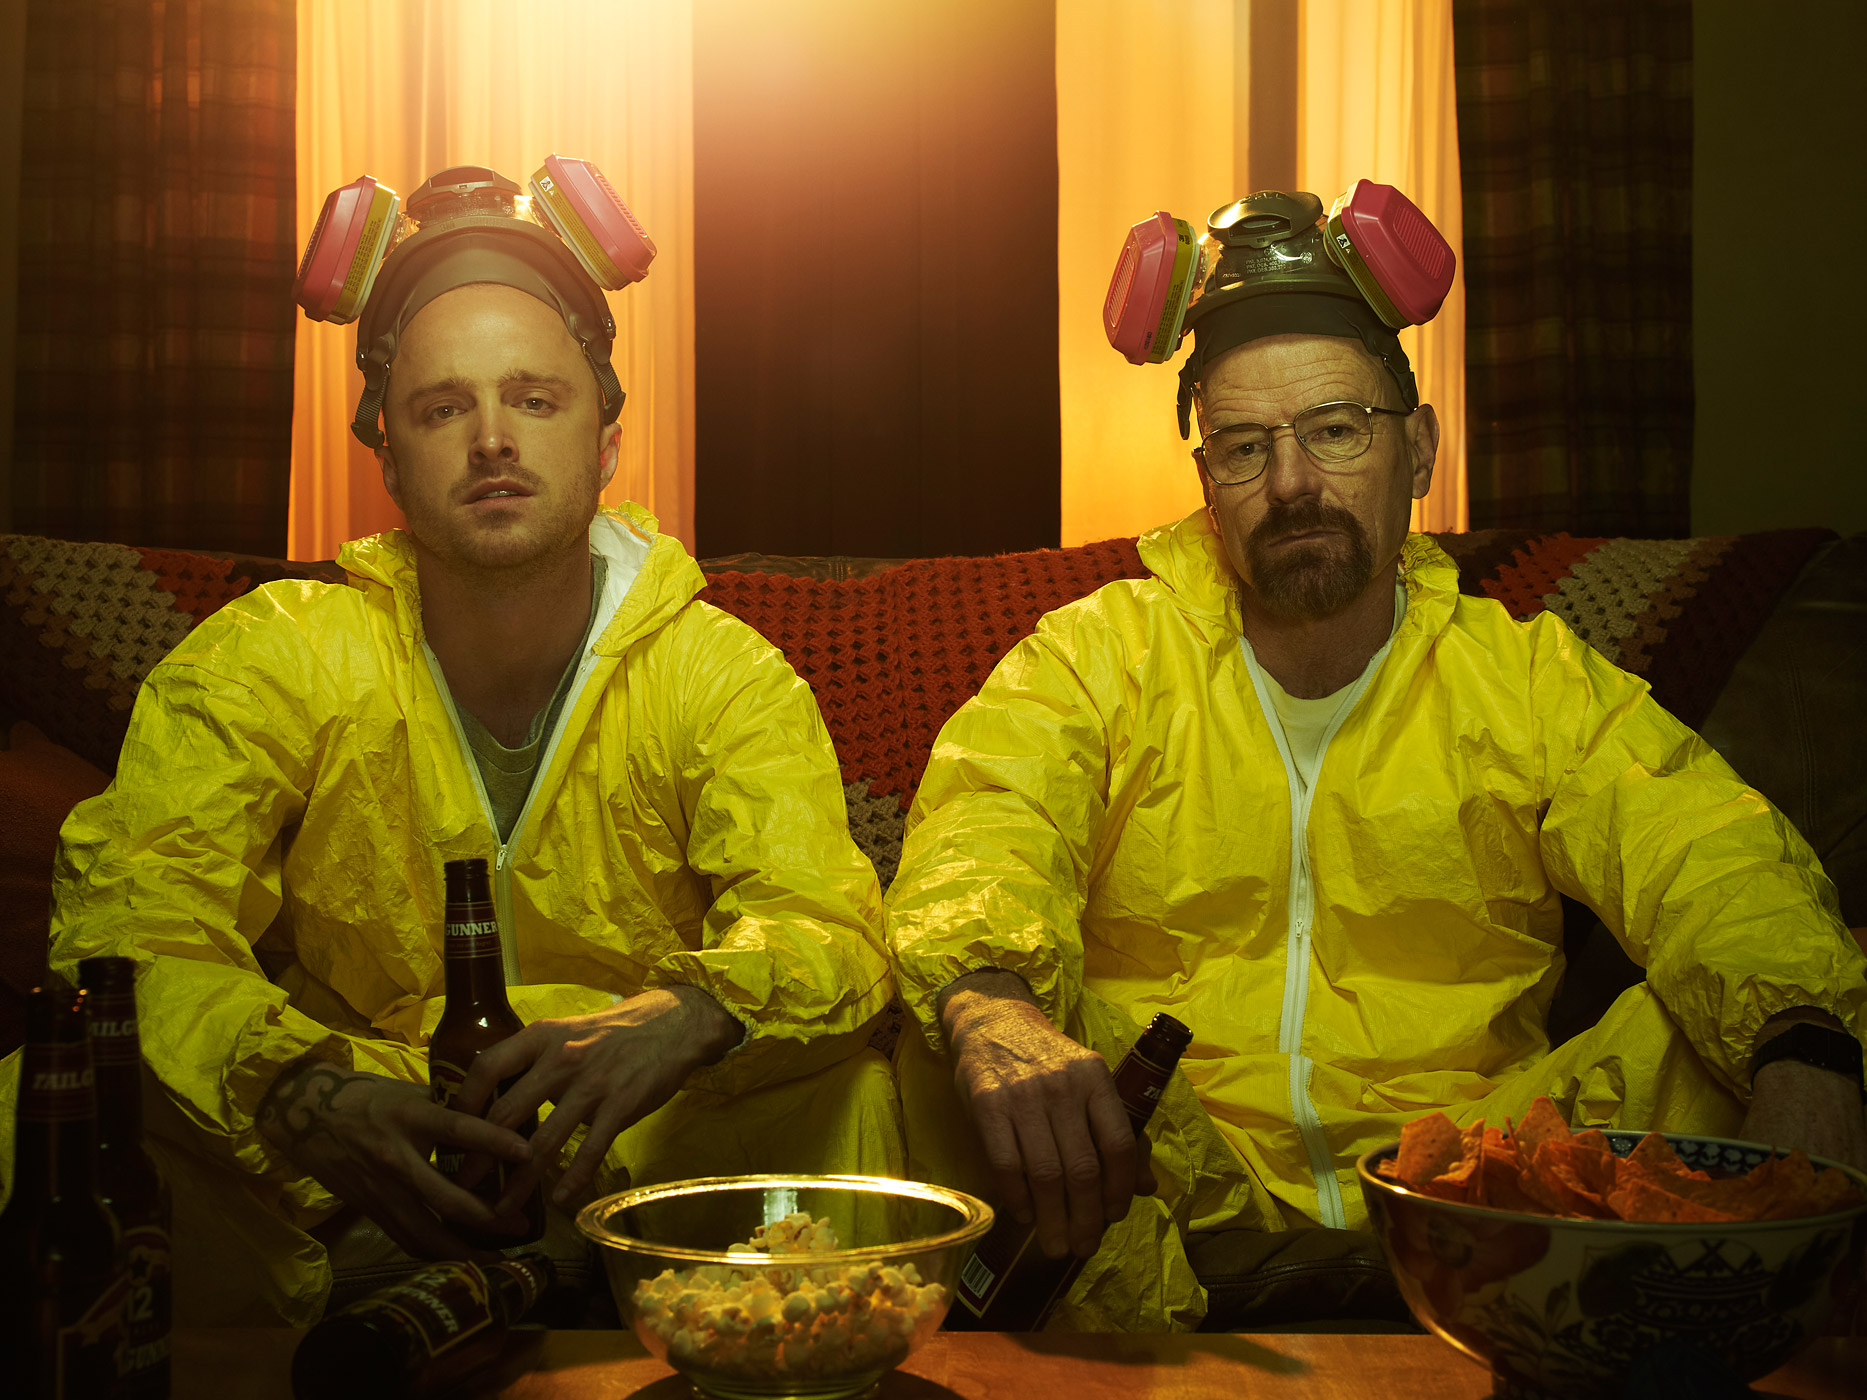 Jesse Pinkman (Aaron Paul) and Walter White (Bryan Cranston) on Breaking Bad